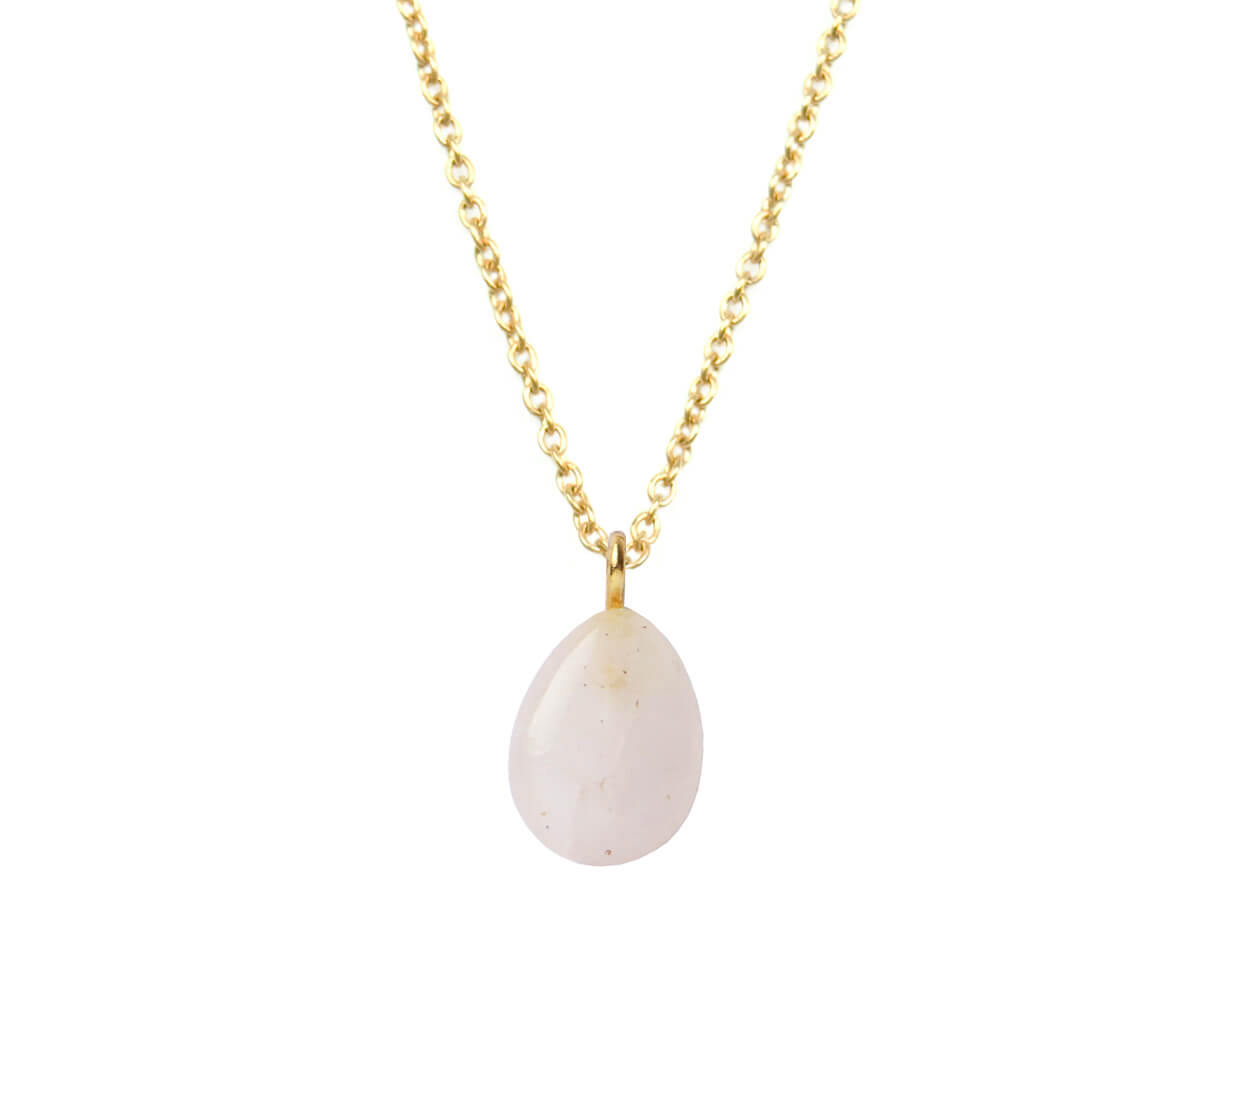 Mas Jewelz necklace long with Pendant Rose Quartz Gold